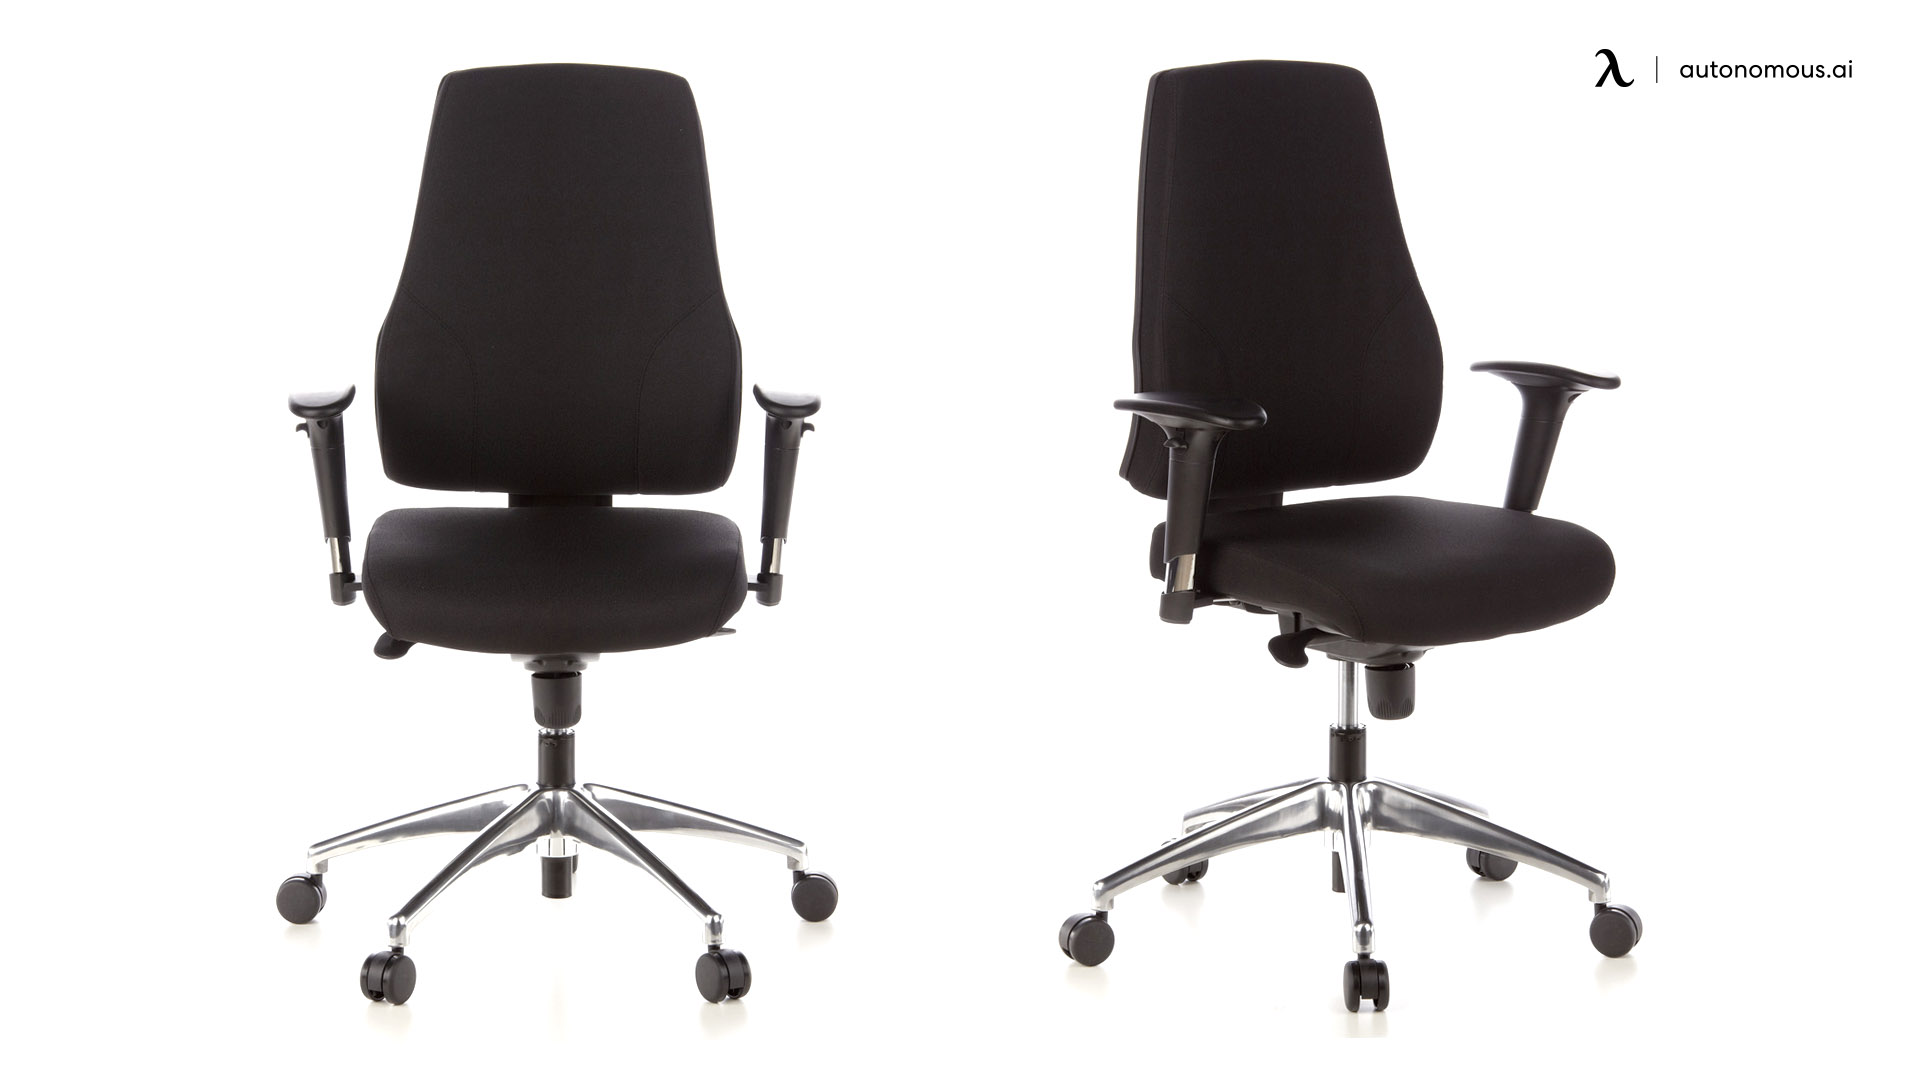 Professional Office Chair- Hjh Office Pro-Tec 200